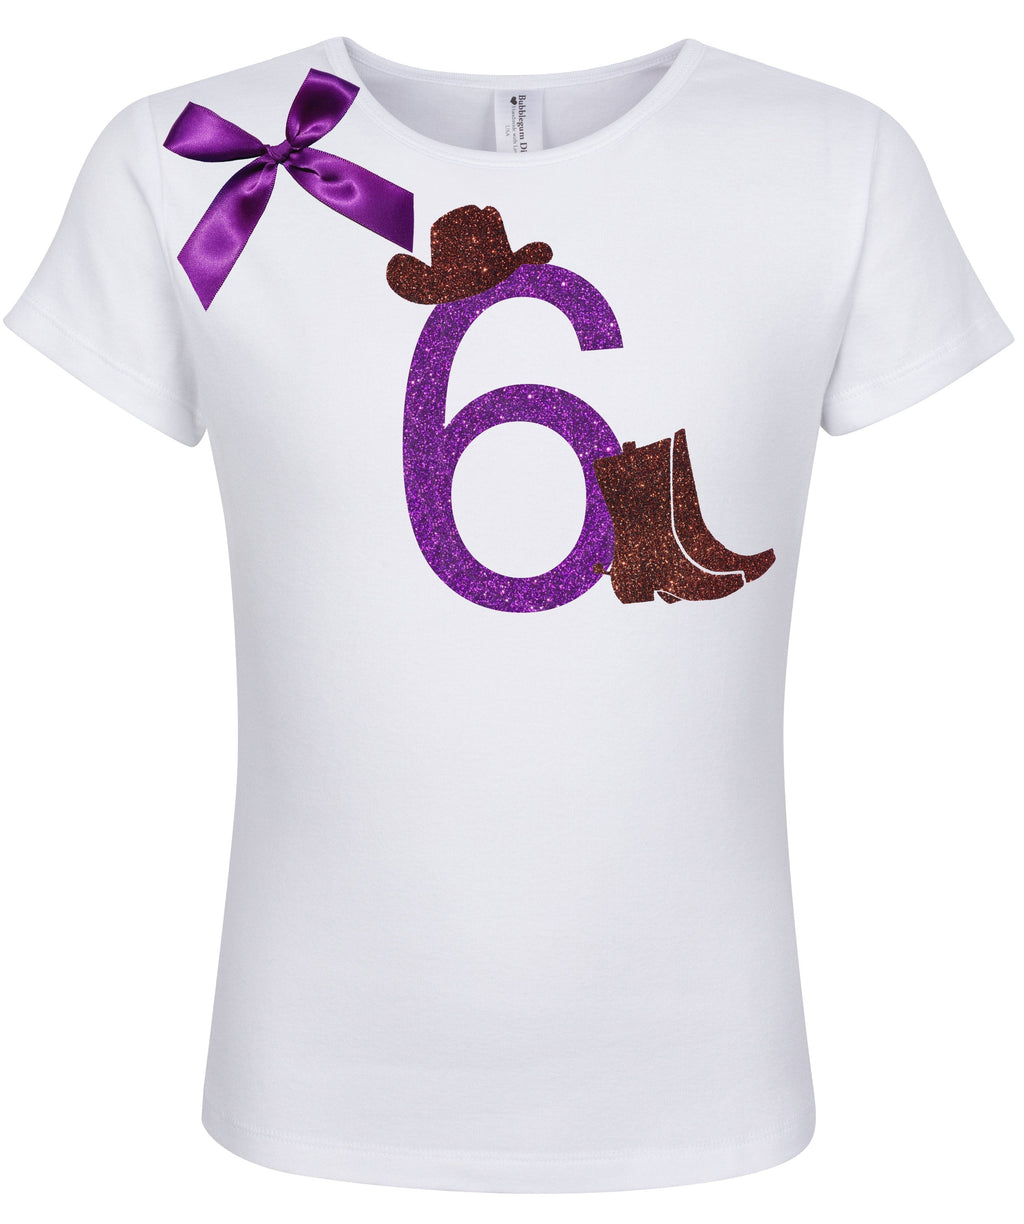 6th Birthday Shirt - Cowgirl Boots